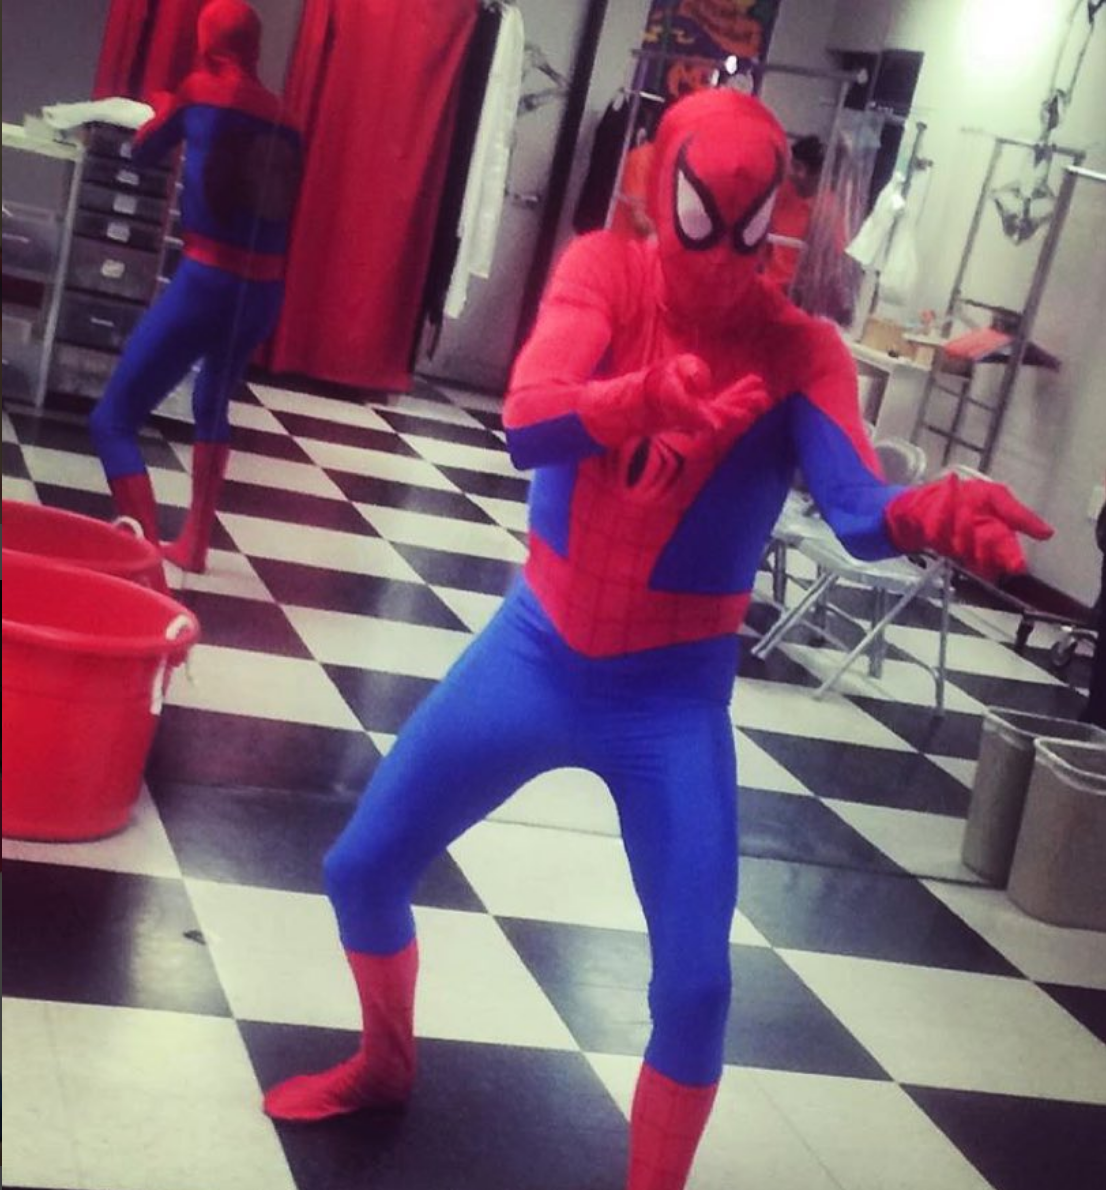 If you think Fortnite is a band and not an action-packed video game, Spider-Man may be the costume for you. Buffalo Breath Instagram photo.